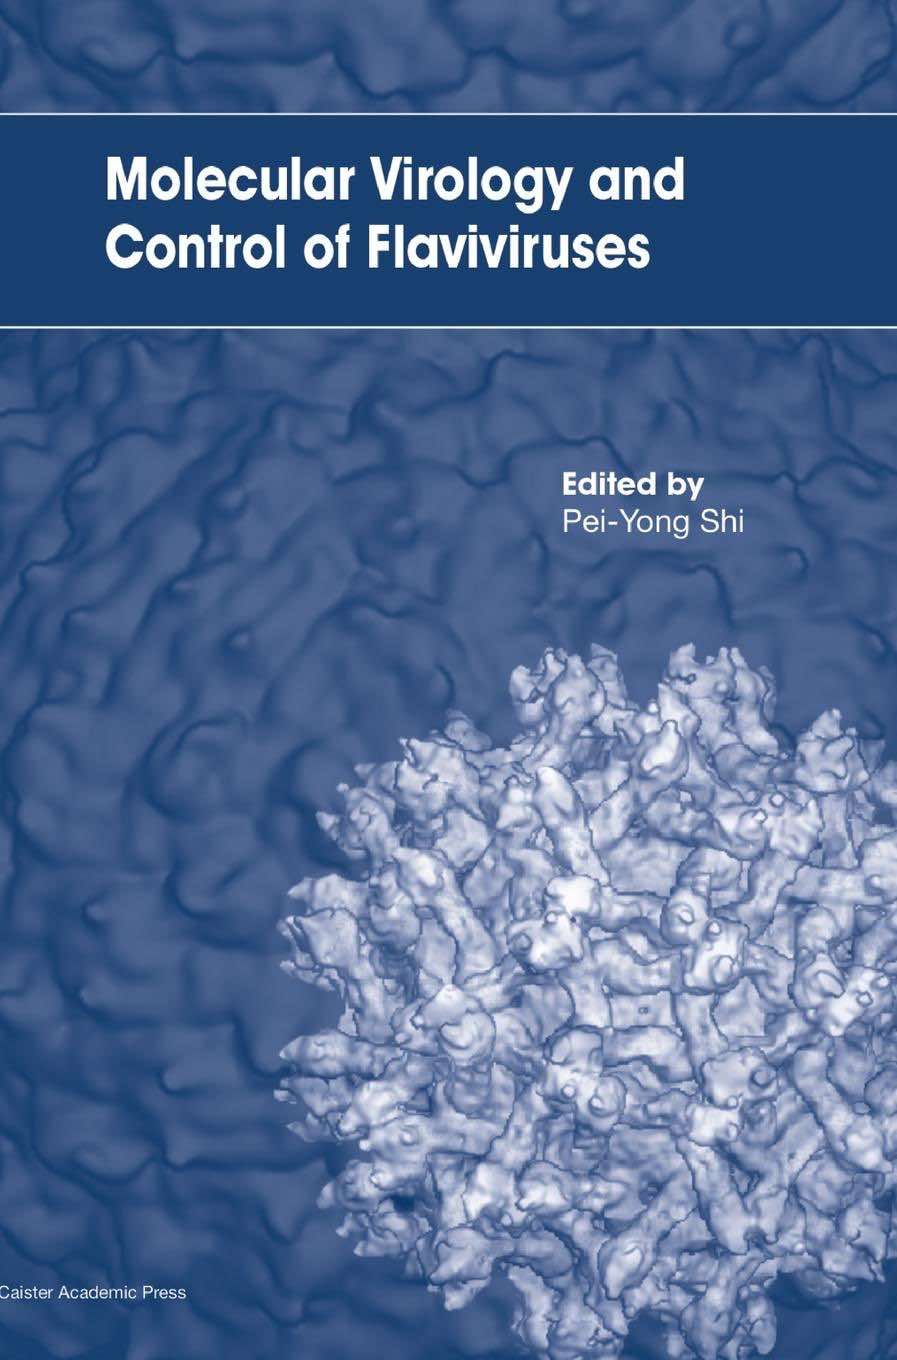 Molecular Virology and Control of Flaviviruses